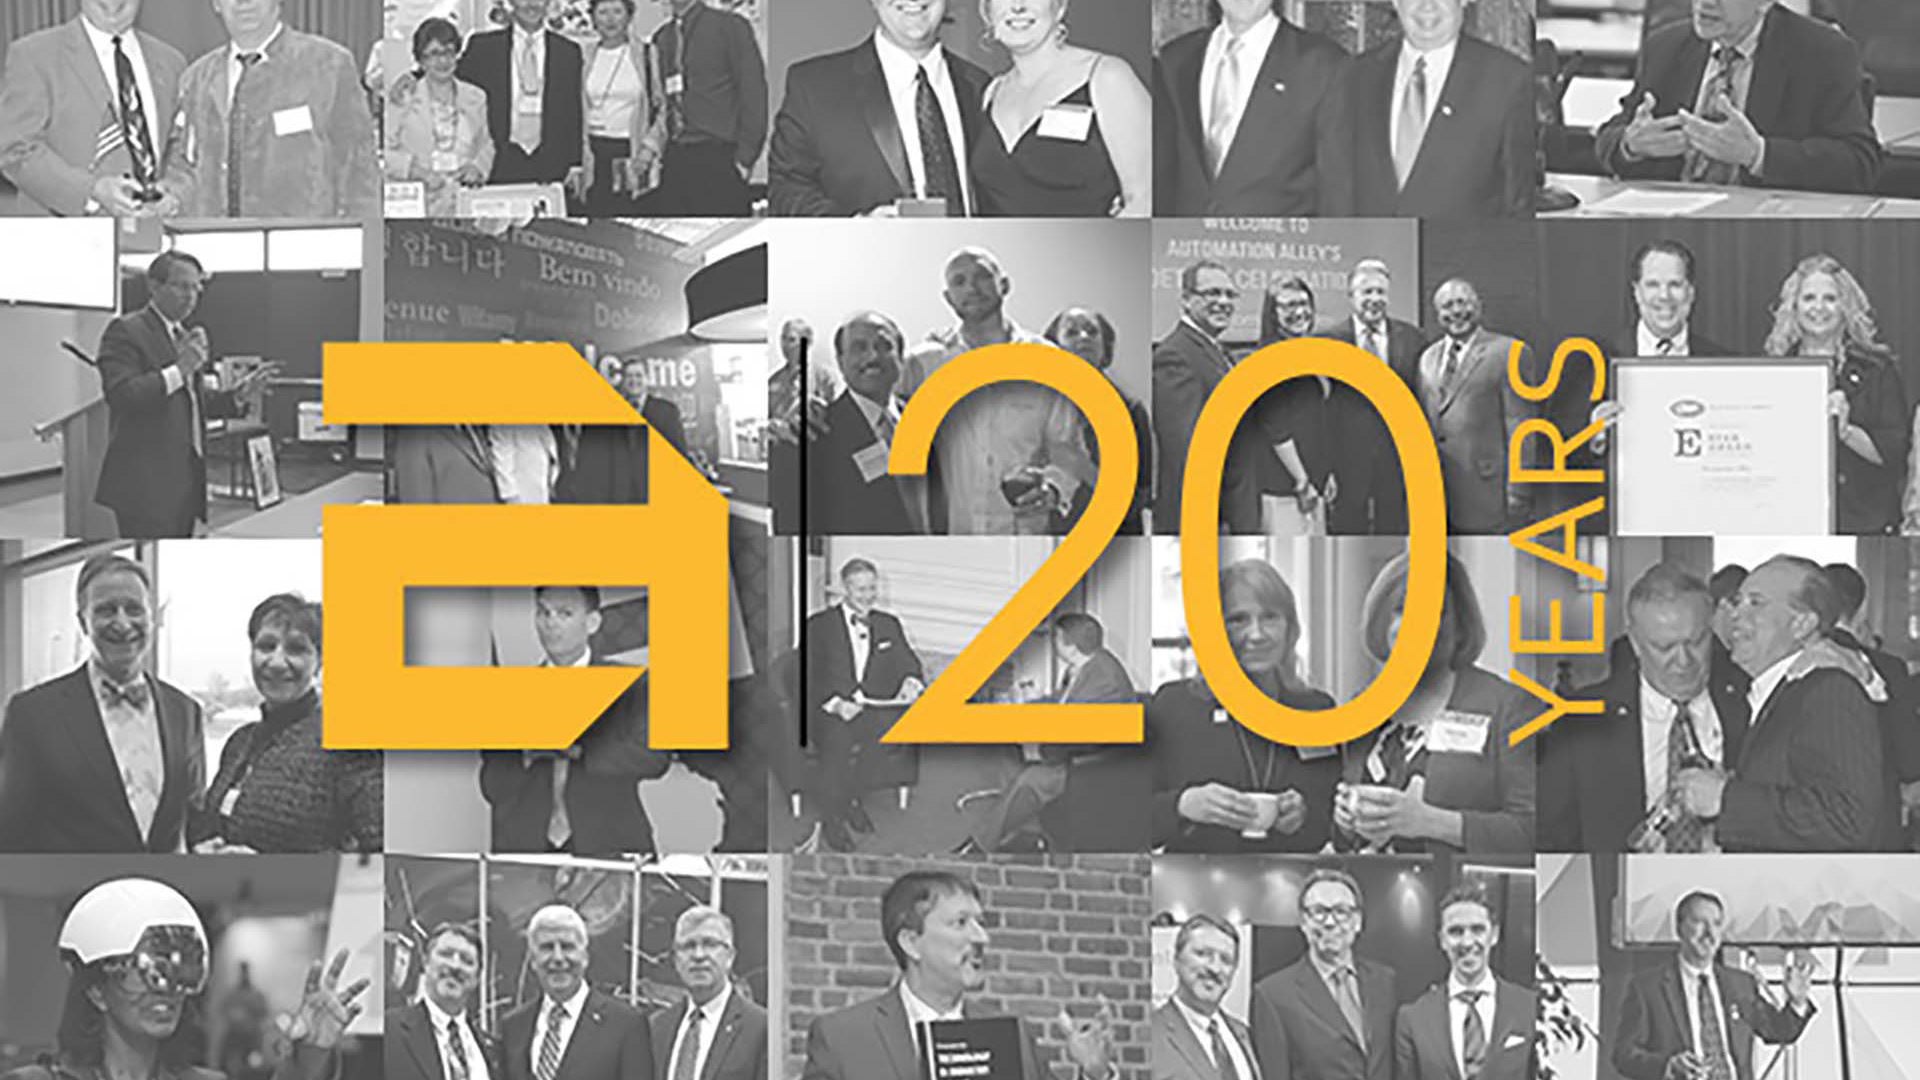 Celebrating 20 years of economic development and innovation, Automation Alley gains global momentum as an Industry 4.0 leader